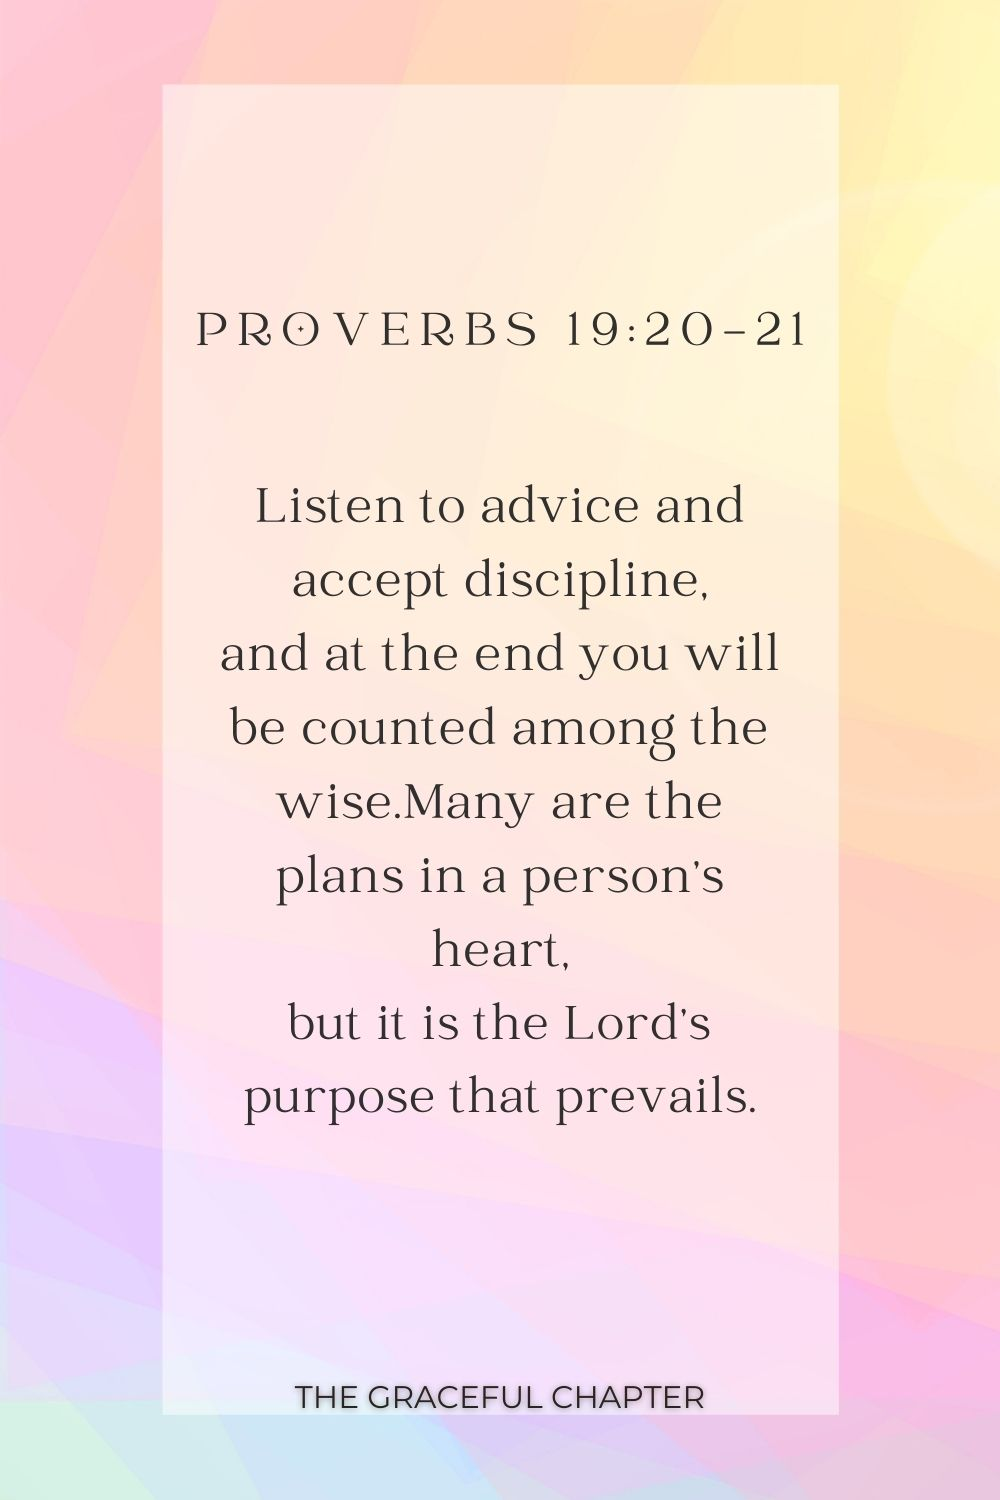 Listen to advice and accept discipline, and at the end you will be counted among the wise.Many are the plans in a person's heart, but it is the Lord's purpose that prevails. Proverbs 19:20-21